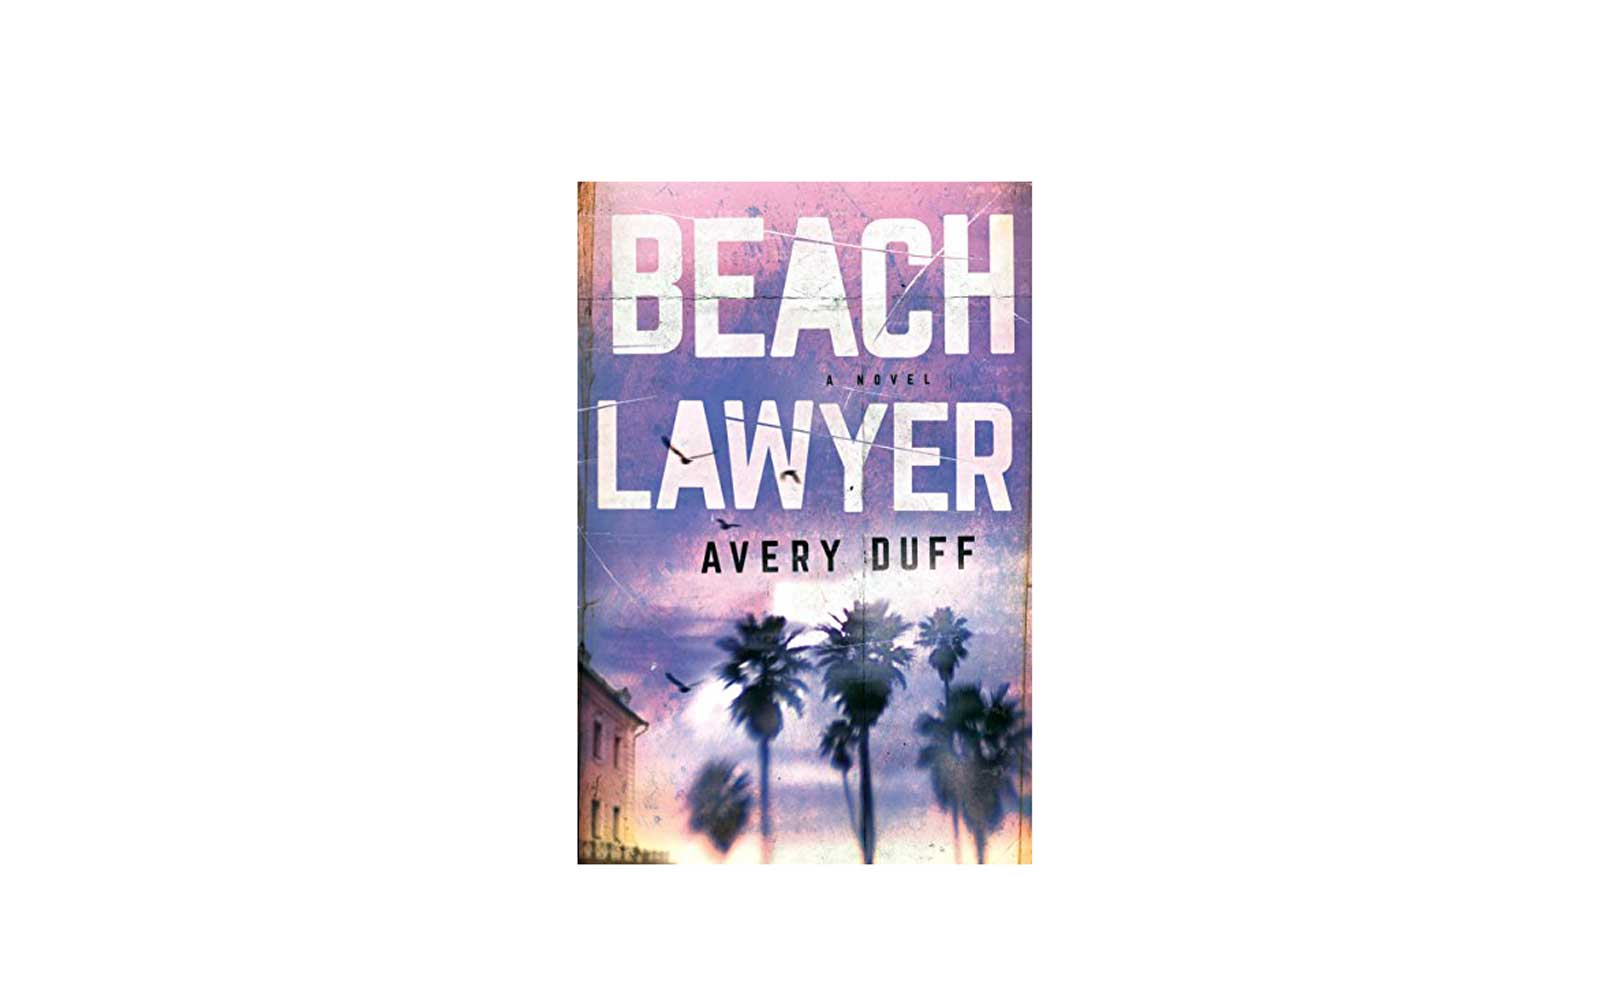 20 most popular Kindle books 2017 Beach Lawyer